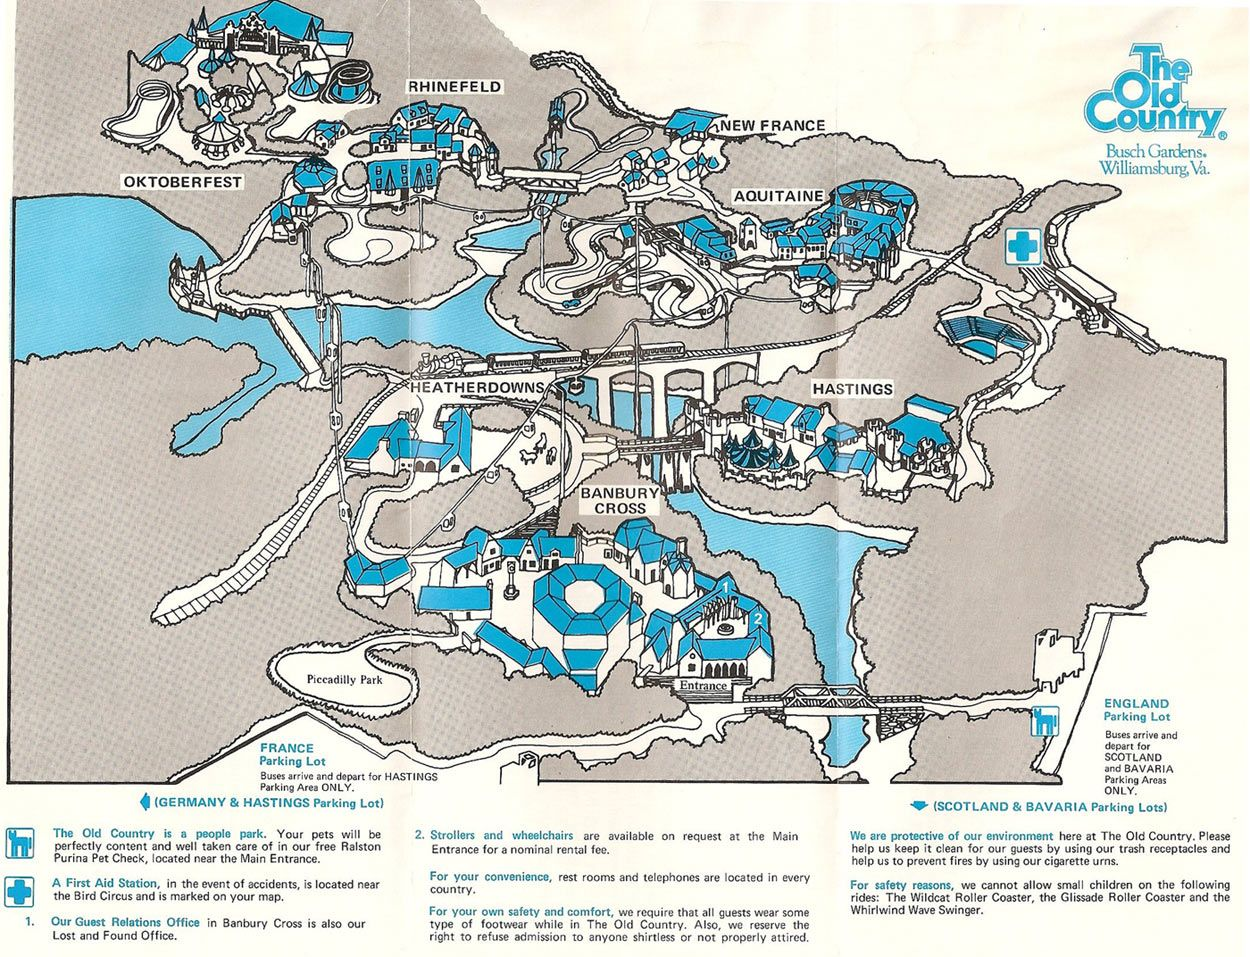 Busch Gardens The Old Country Theme Park Maps - Bush gardens park map